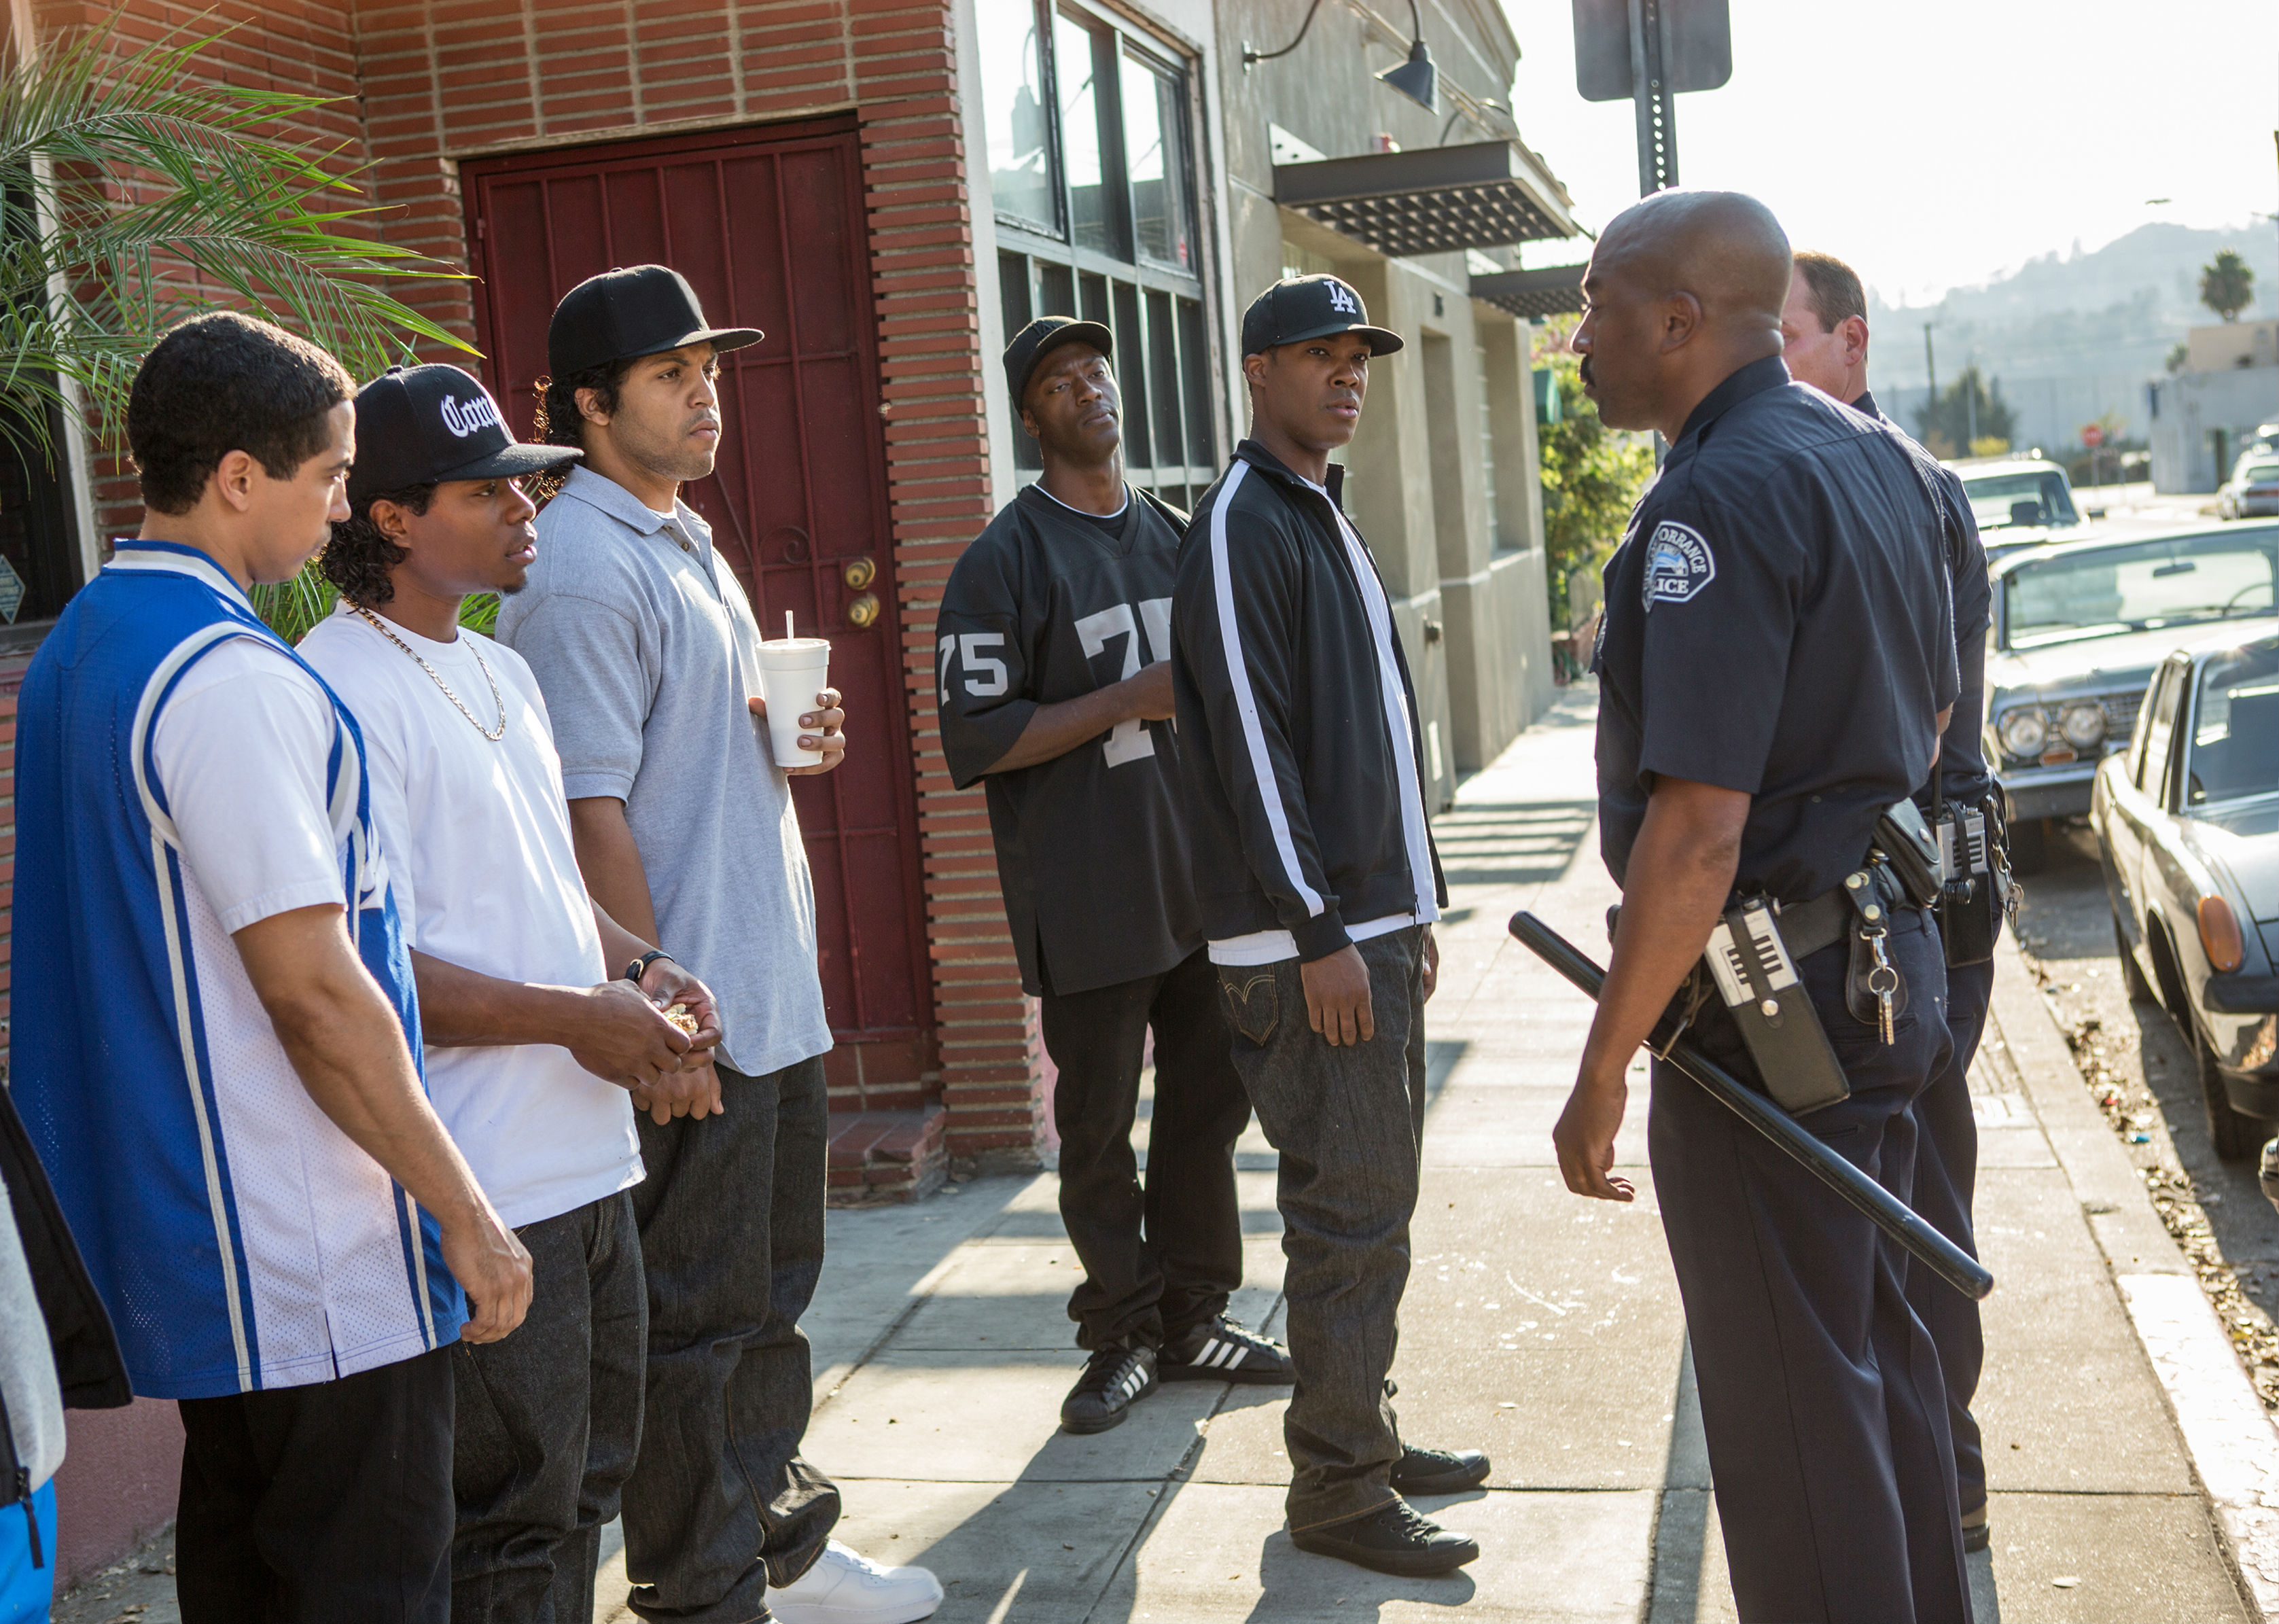 Straight Outta Compton | Now Playing | Movie Synopsis and info |Straight Outta Compton Movie